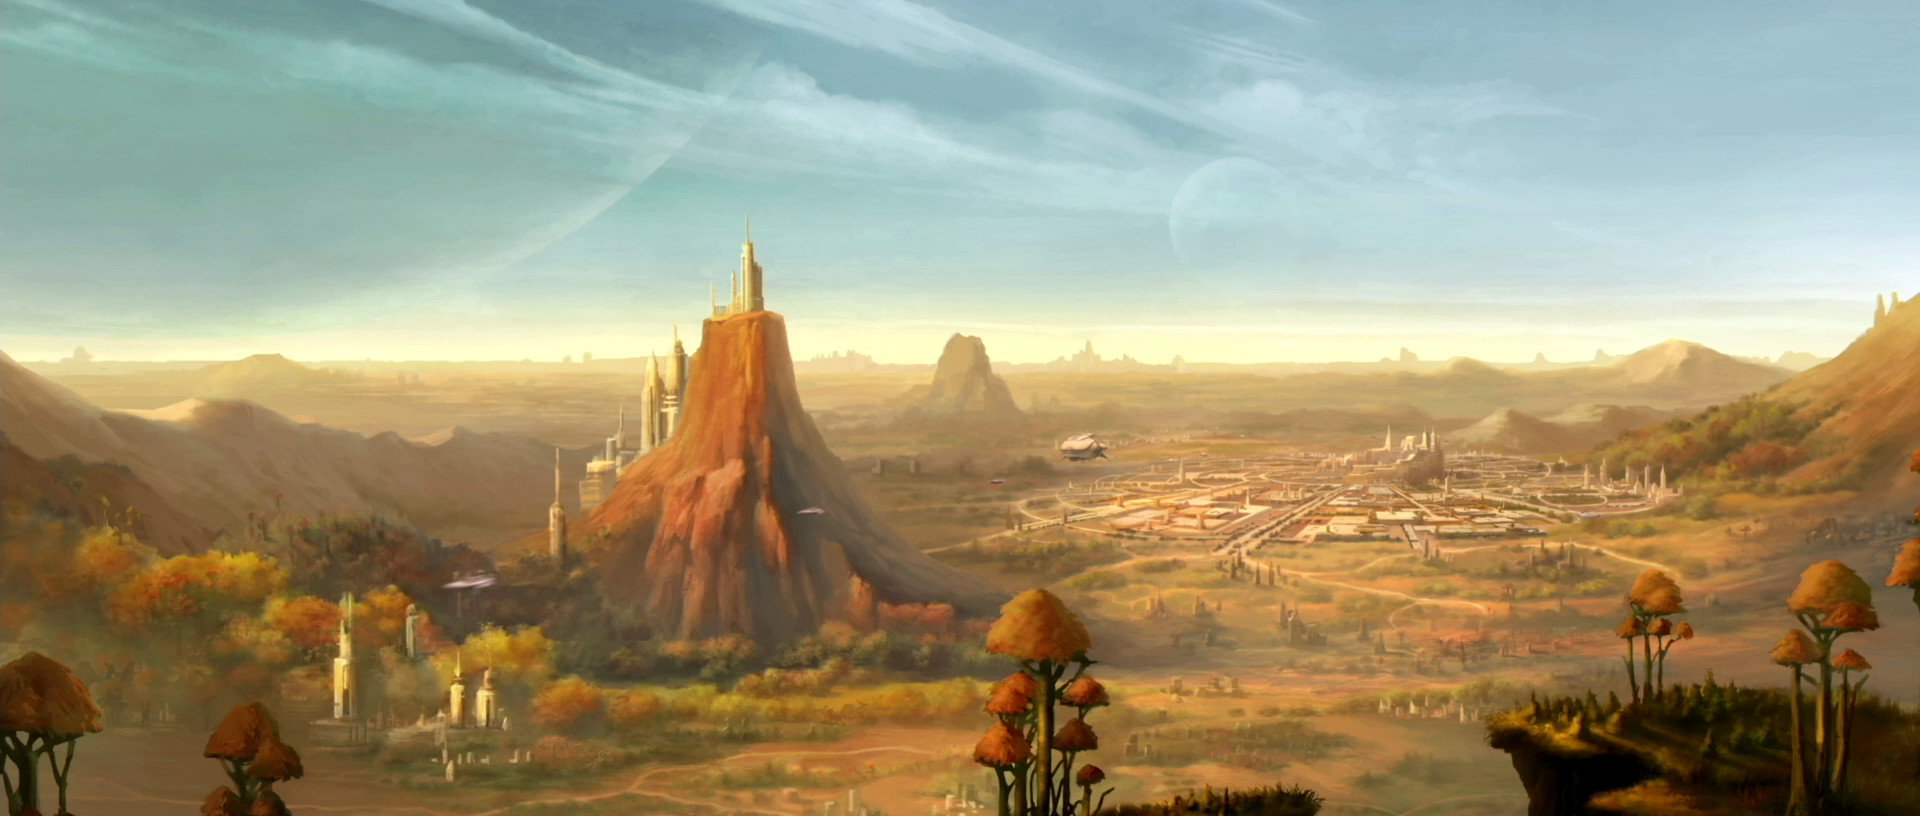 Best ideas about Star Wars Landscape . Save or Pin Image RaxusLandscape HOBS Wookieepedia the Star Now.